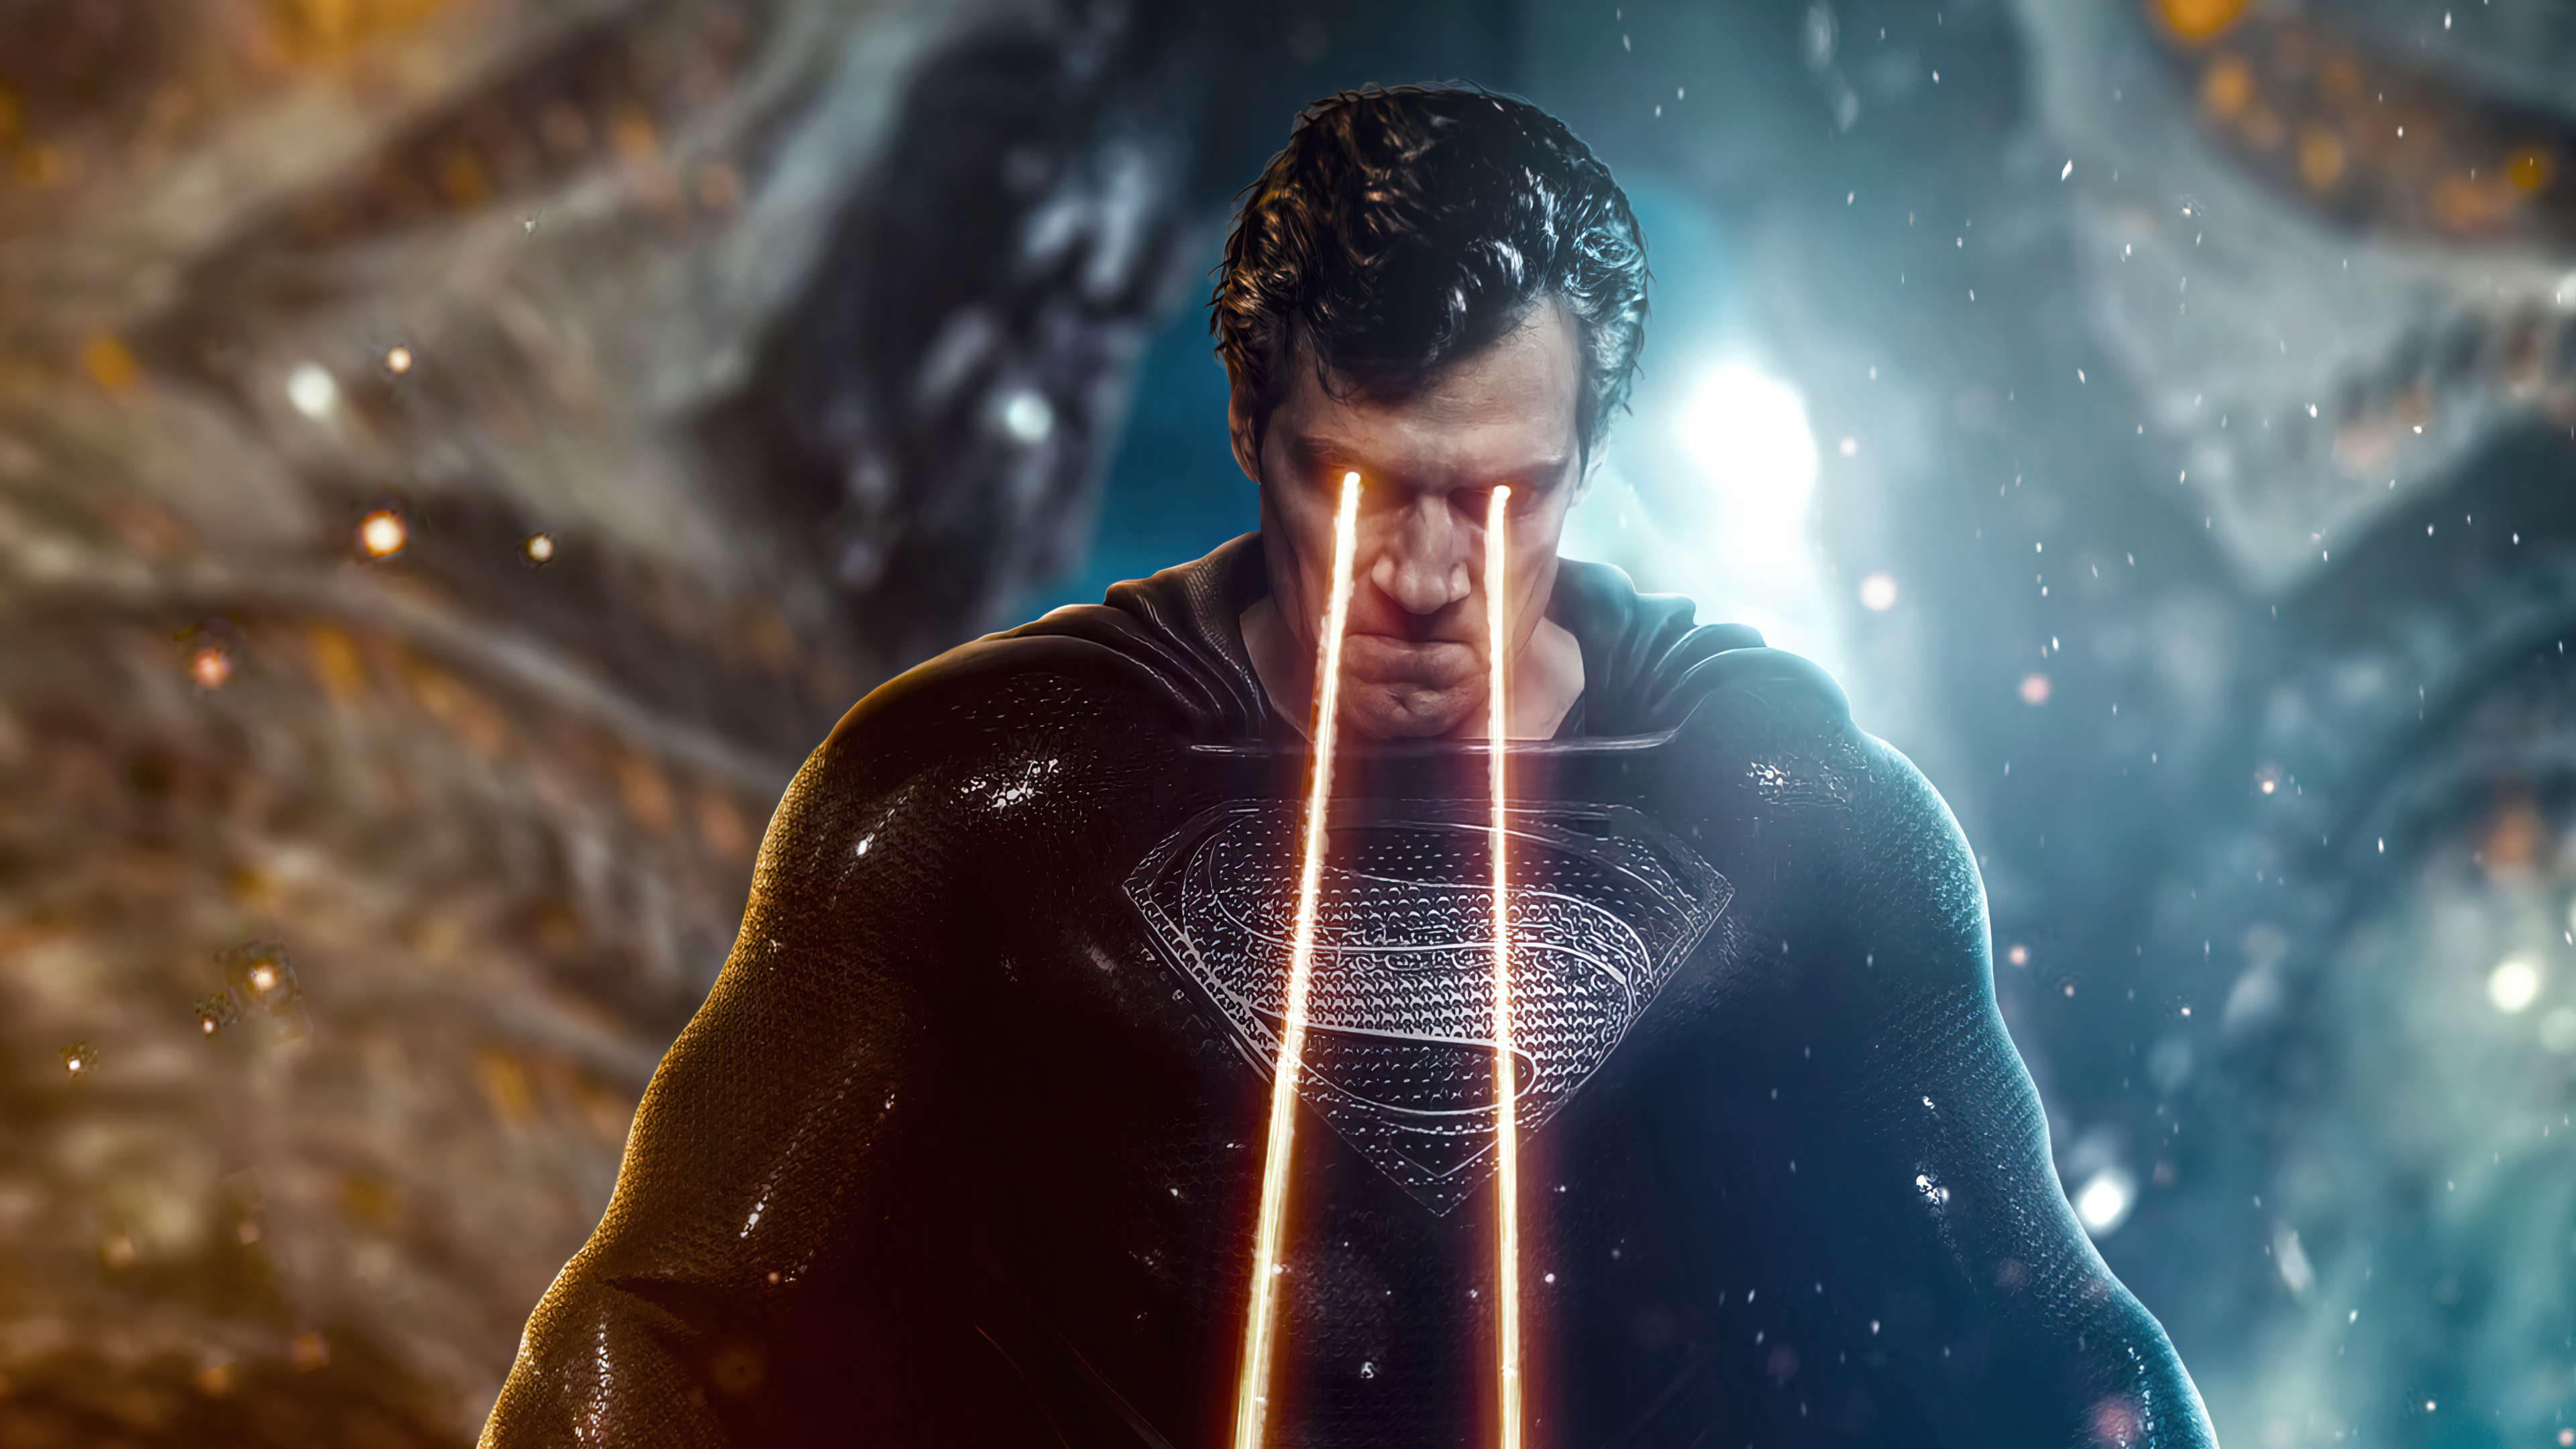 Wallpaper Superman with heat vision